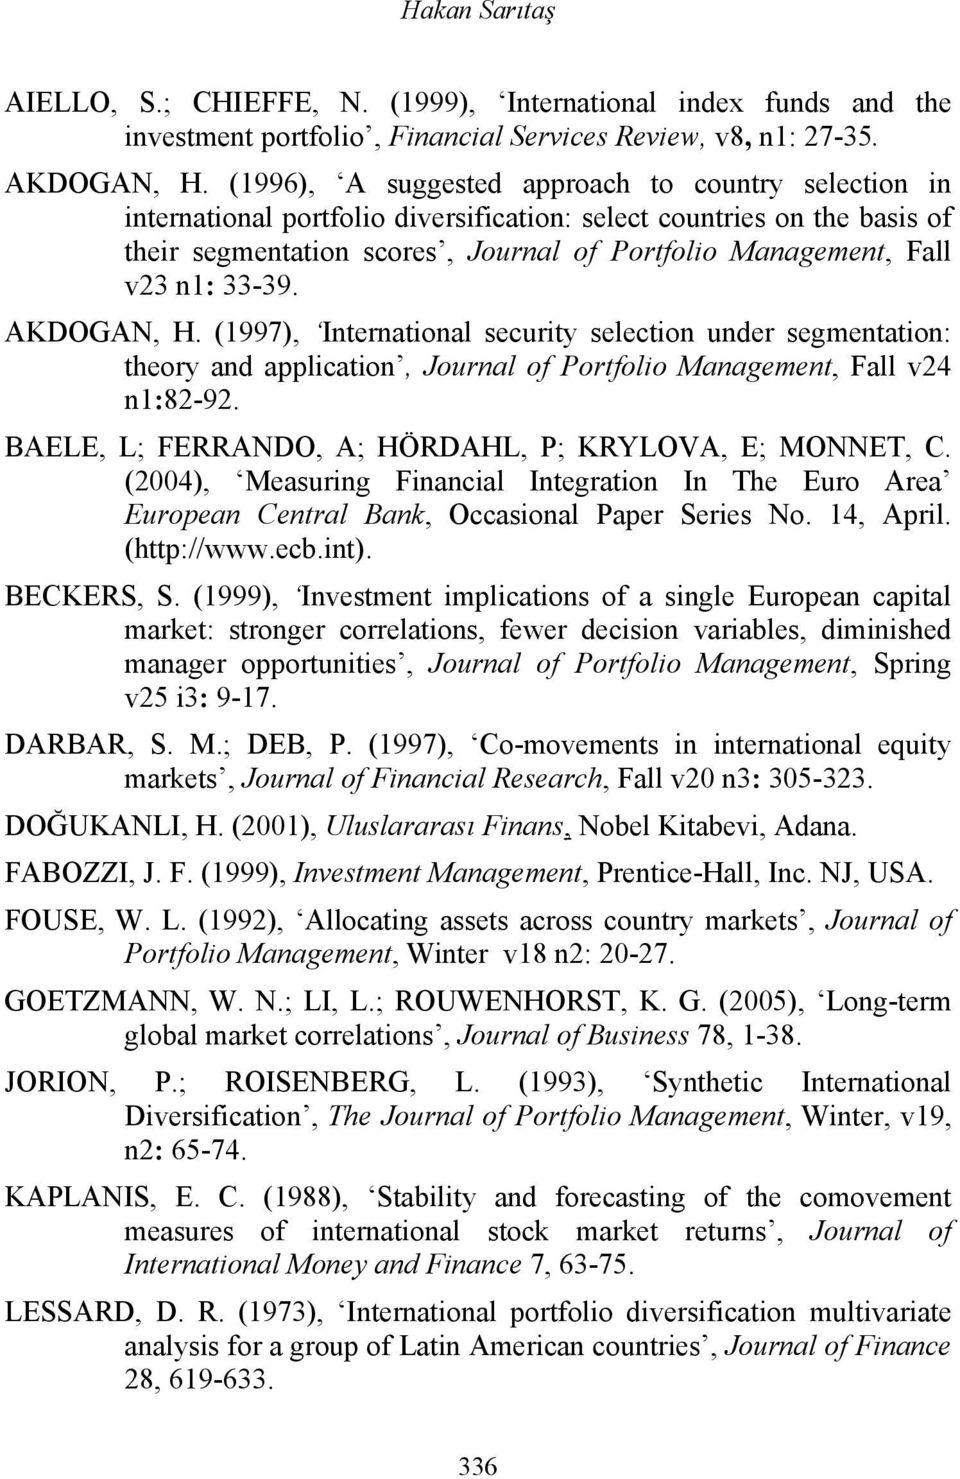 33-39. AKDOGAN, H. (1997), International security selection under segmentation: theory and application, Journal of Portfolio Management, Fall v24 n1:82-92.